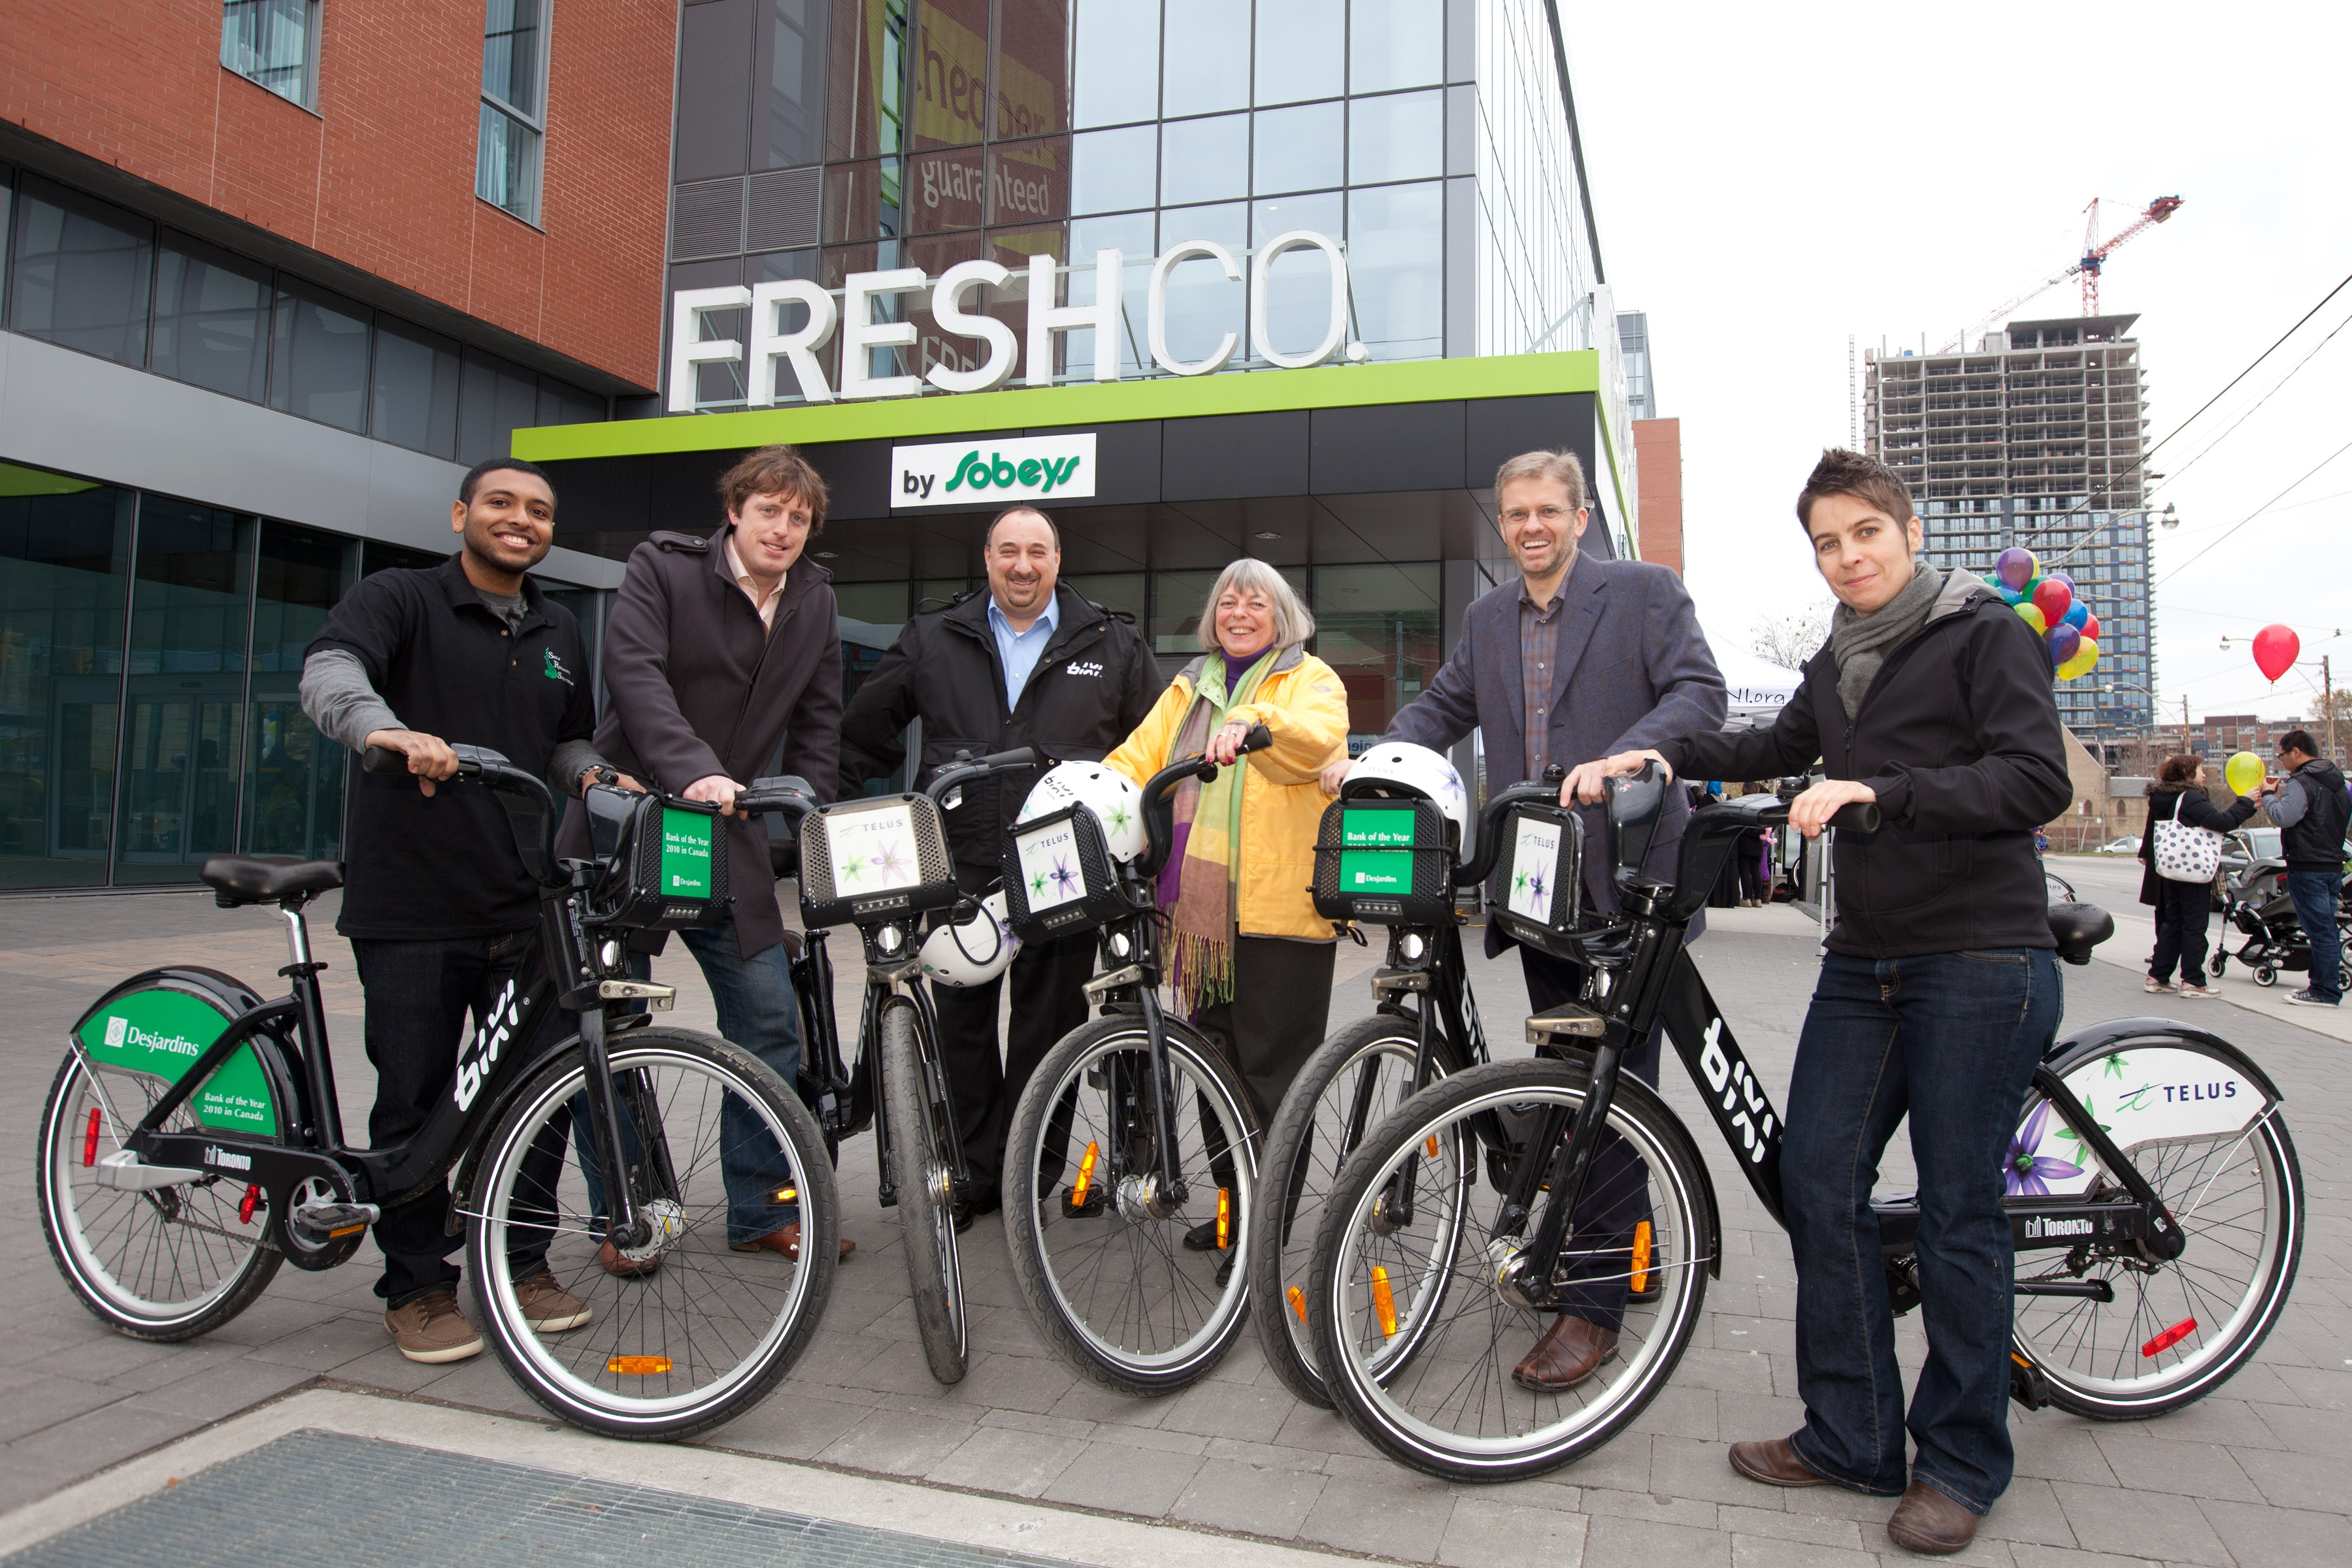 Ready to roll (left to right) are tenant Amzad Khan, Director of the Regent Park revitalization Tom Burr, BIXI Toronto Operations Manager Michael Felice, Councillor Pam McConnell, Daniels Corporation Vice-President Martin Blake and area resident Cheryl Christensen.